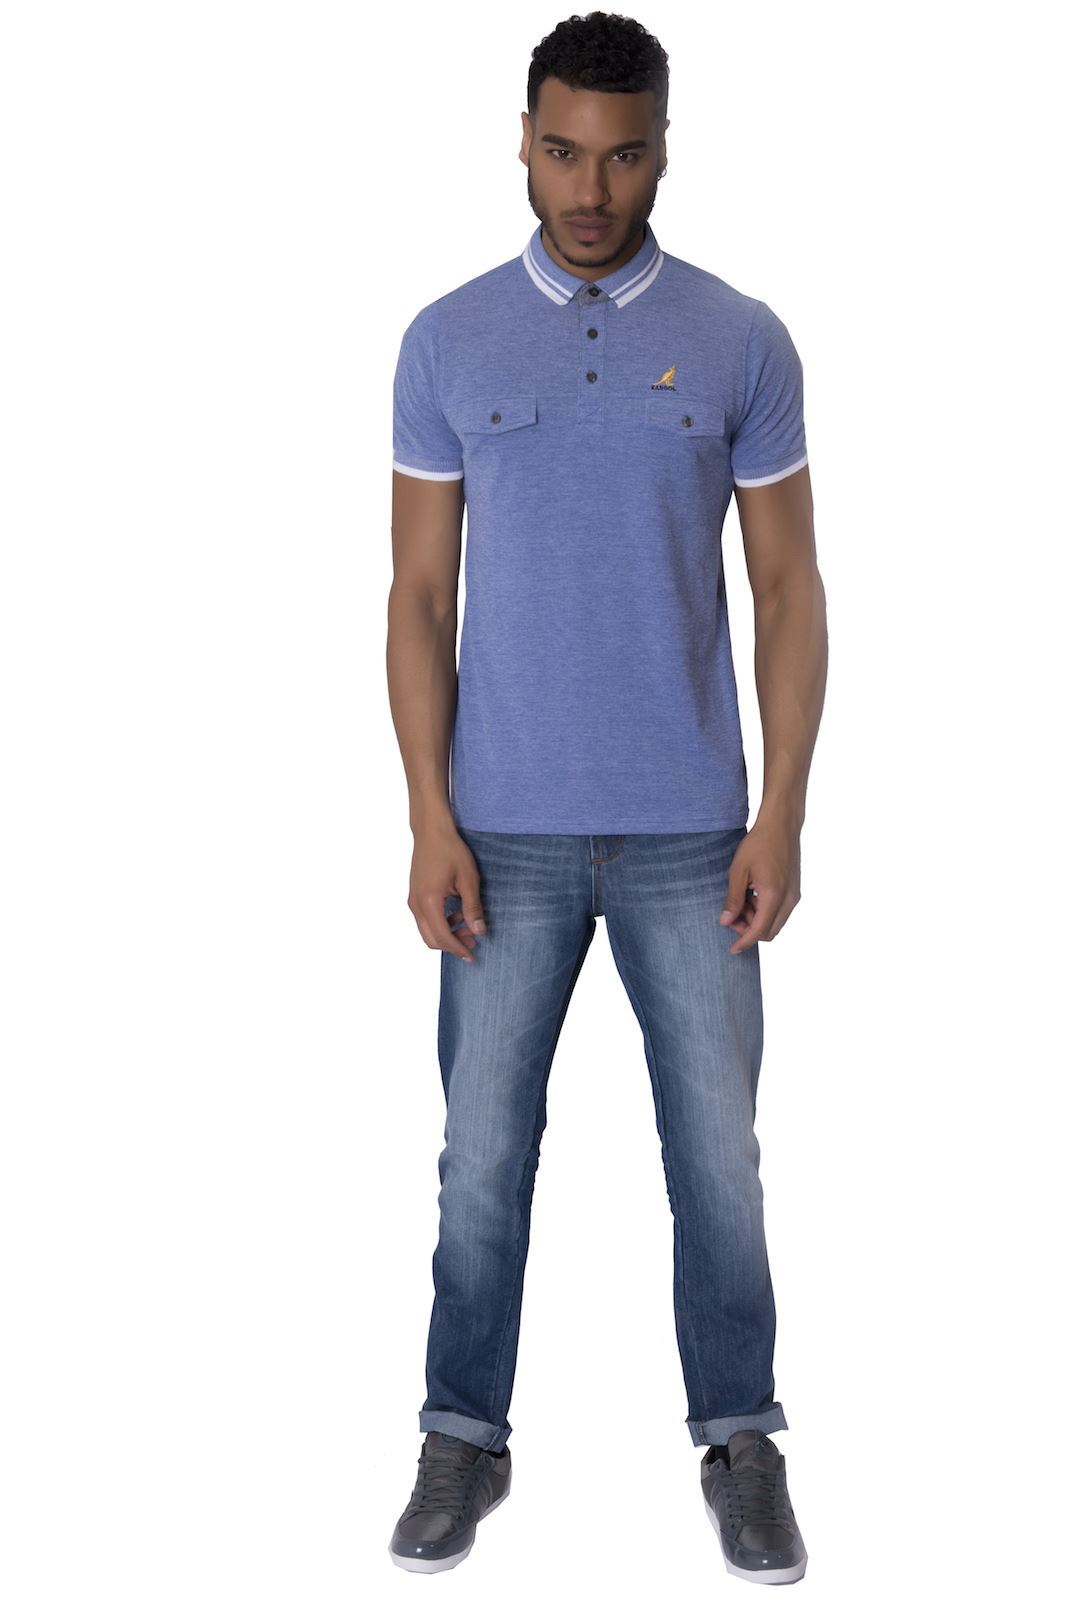 Kangol mens branded polo shirt chest pocket button up for Polo t shirts with pocket online